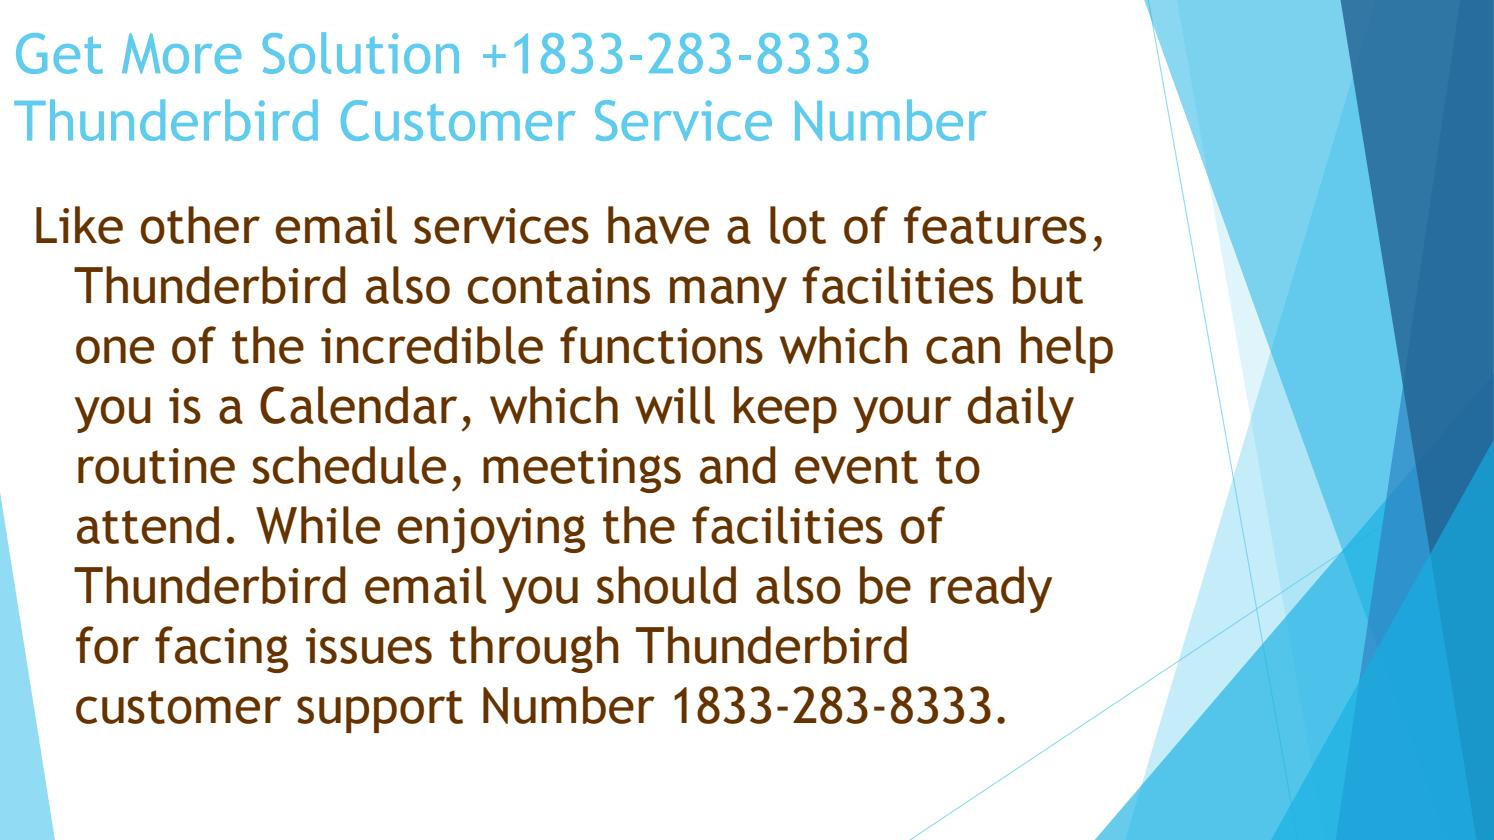 Thunderbird Email Customer Service Number 1833-283-8333 by